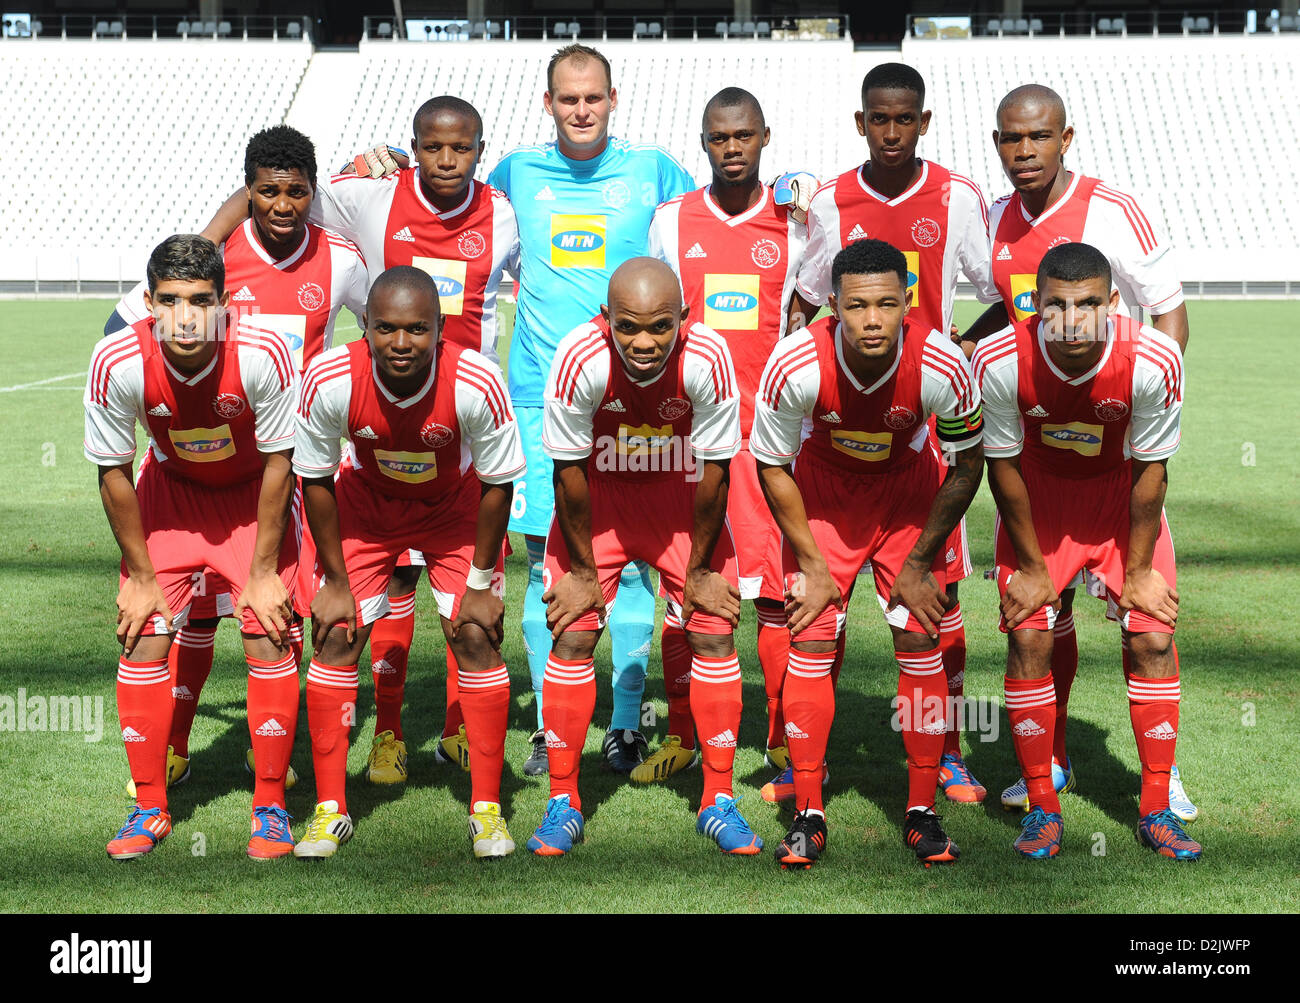 CAPE TOWN, South Africa - Saturday 26 January 2013, Team Ajax Cape Town during the soccer/football match Grasshopper - Stock Image